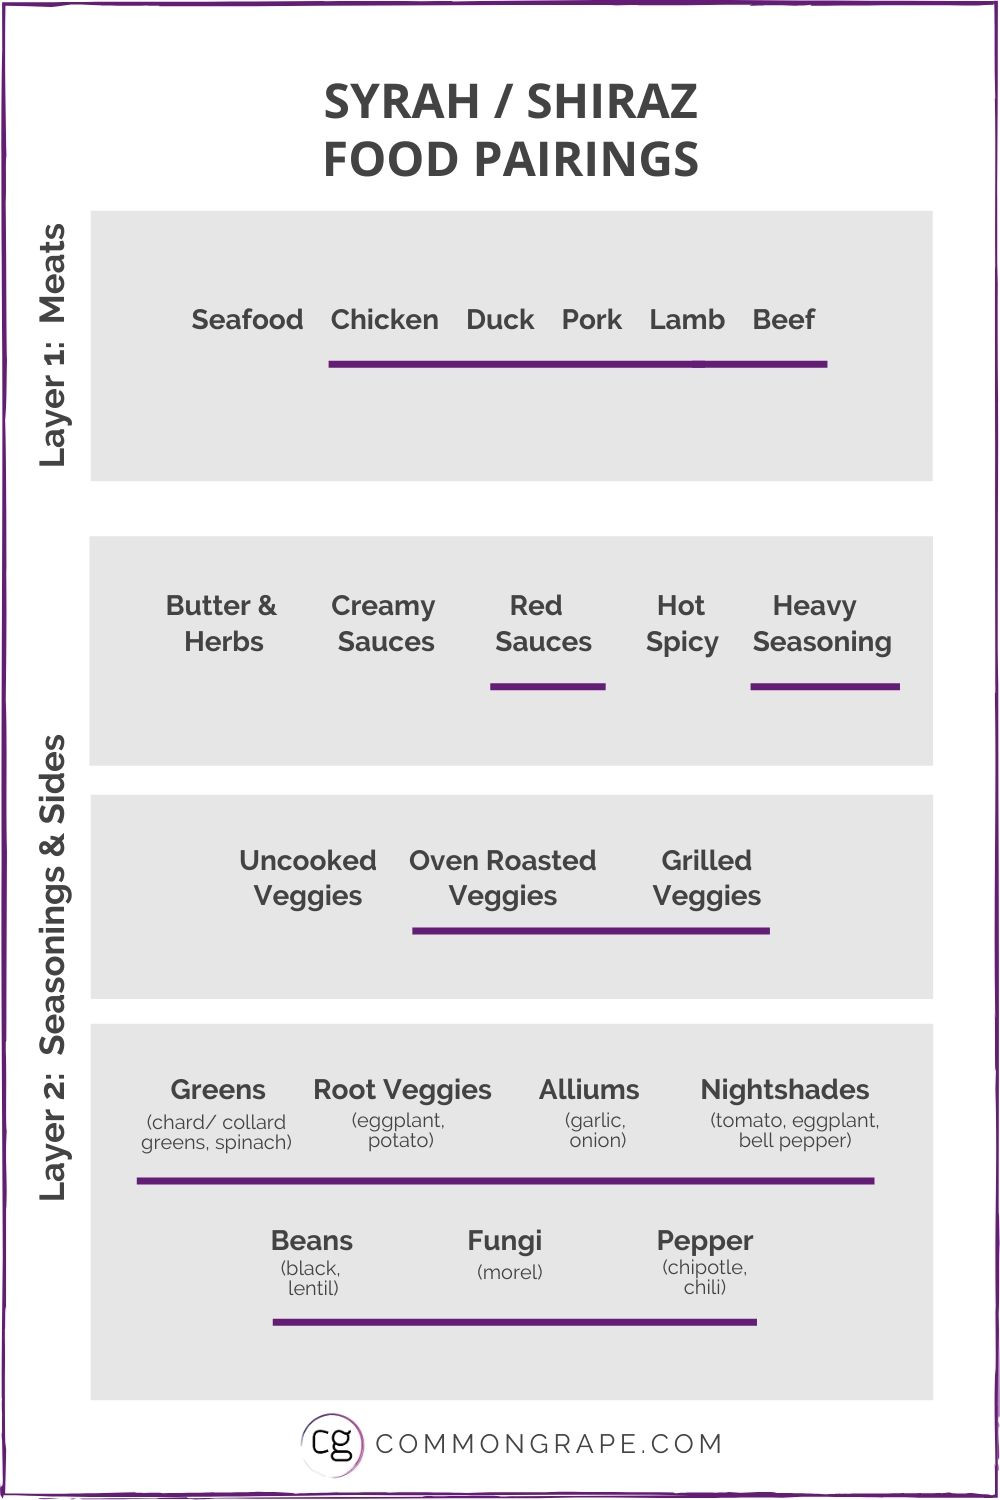 Chart showing the Syrah/Shiraz food pairings.